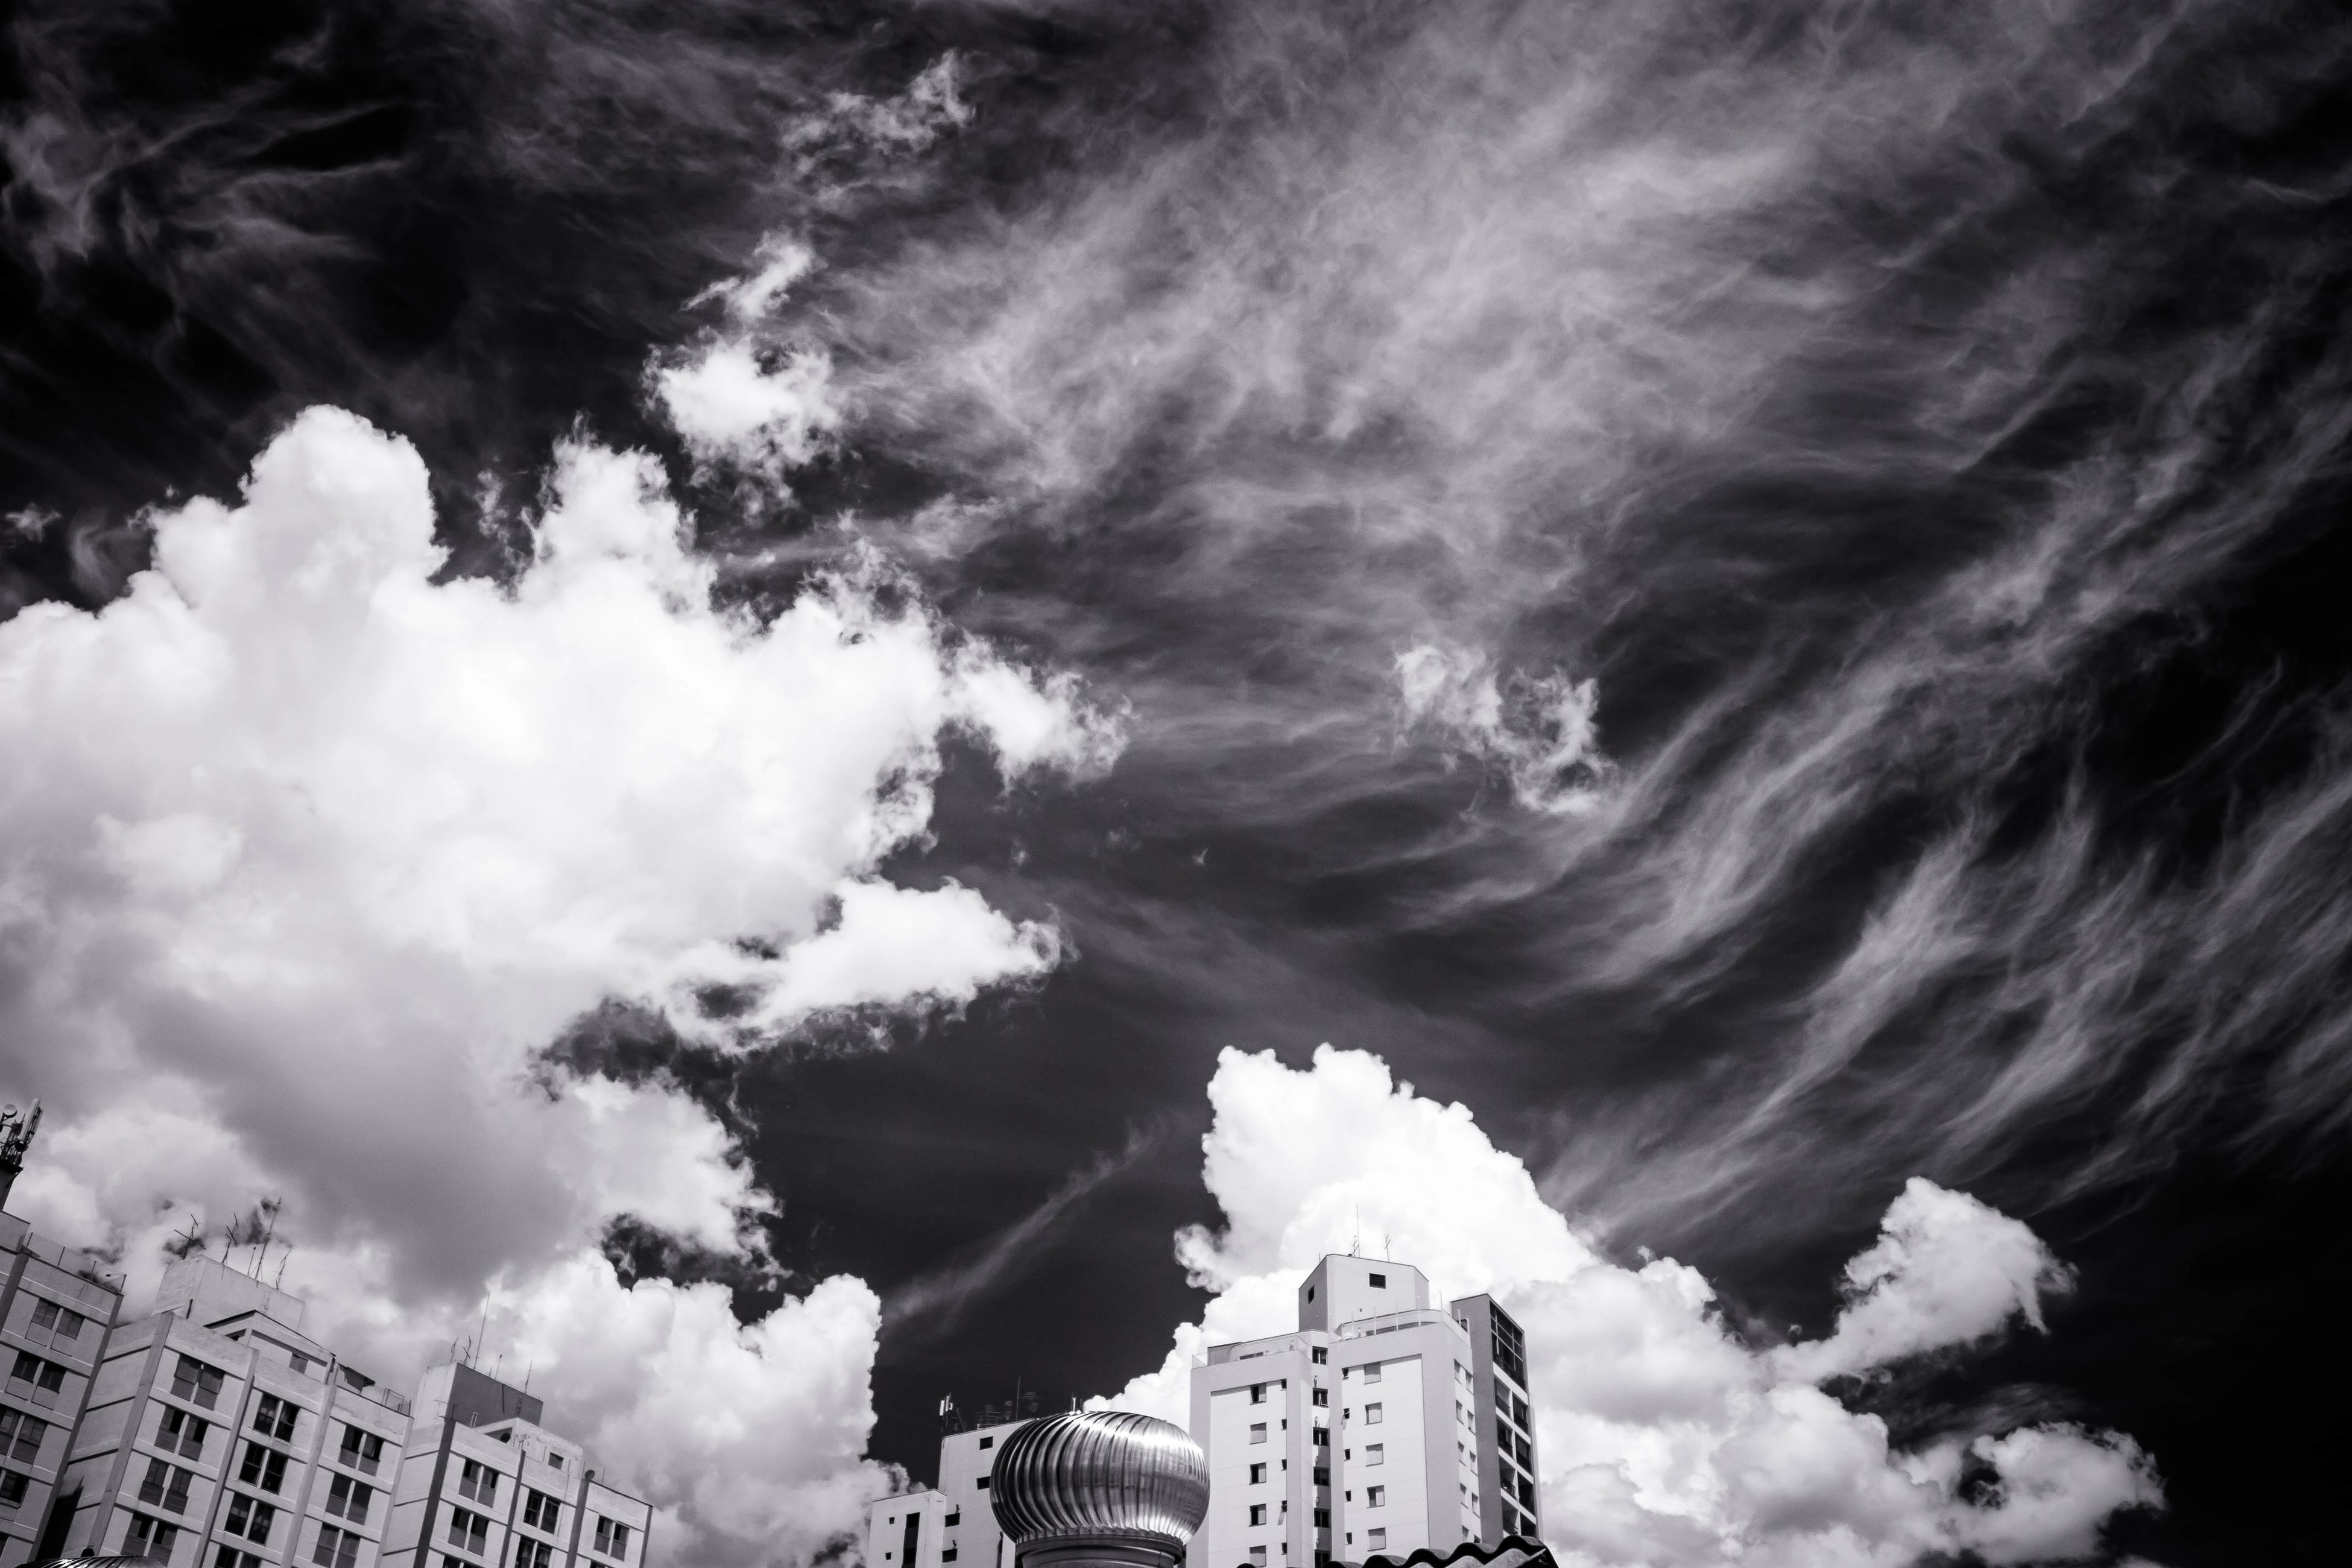 cloud - sky, sky, low angle view, outdoors, no people, architecture, nature, day